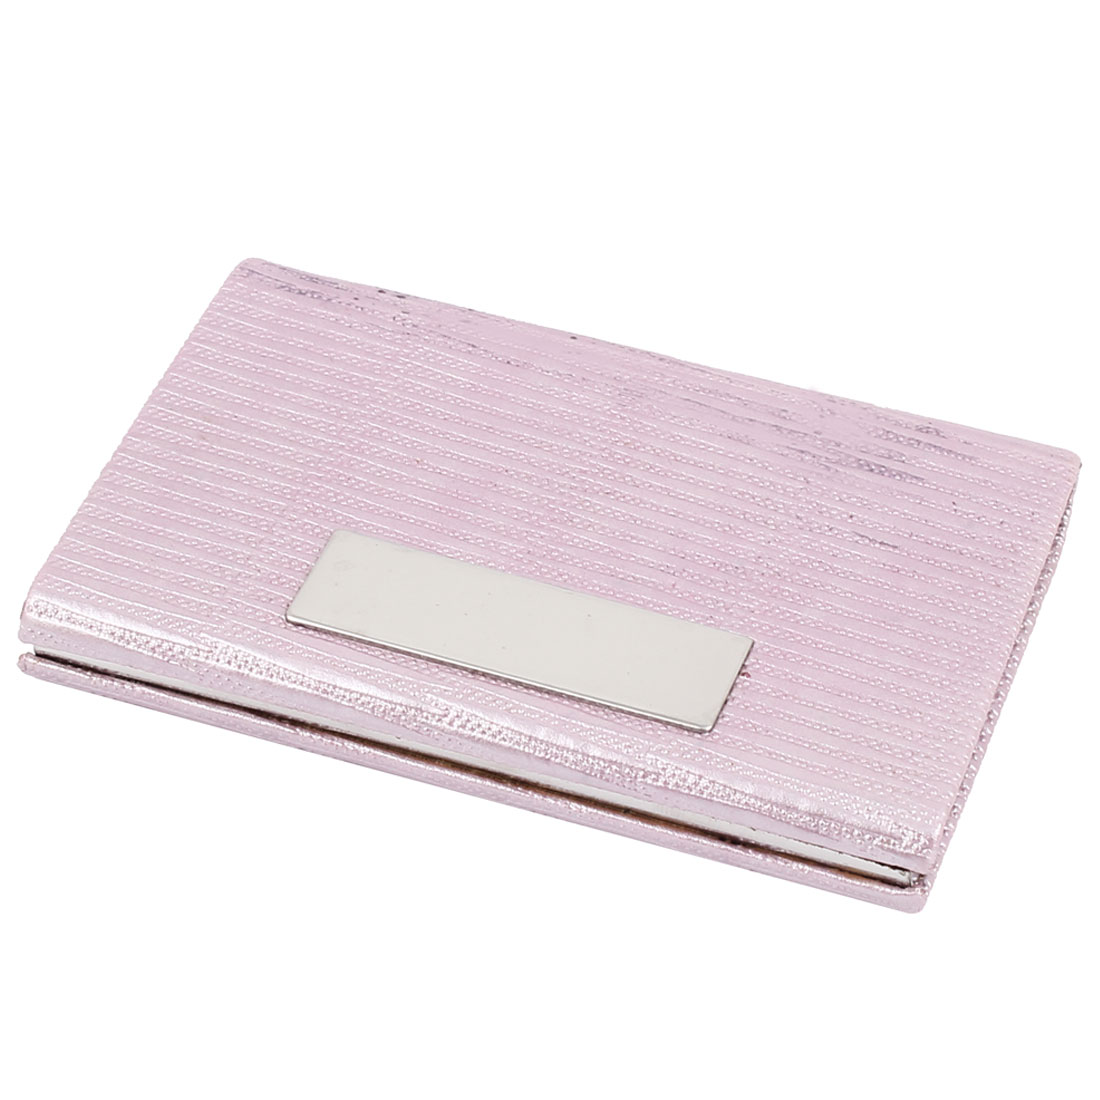 Faux Leather Coated Magnetic Flap Closure ID Name Business Credit Cards Holder Case Pink